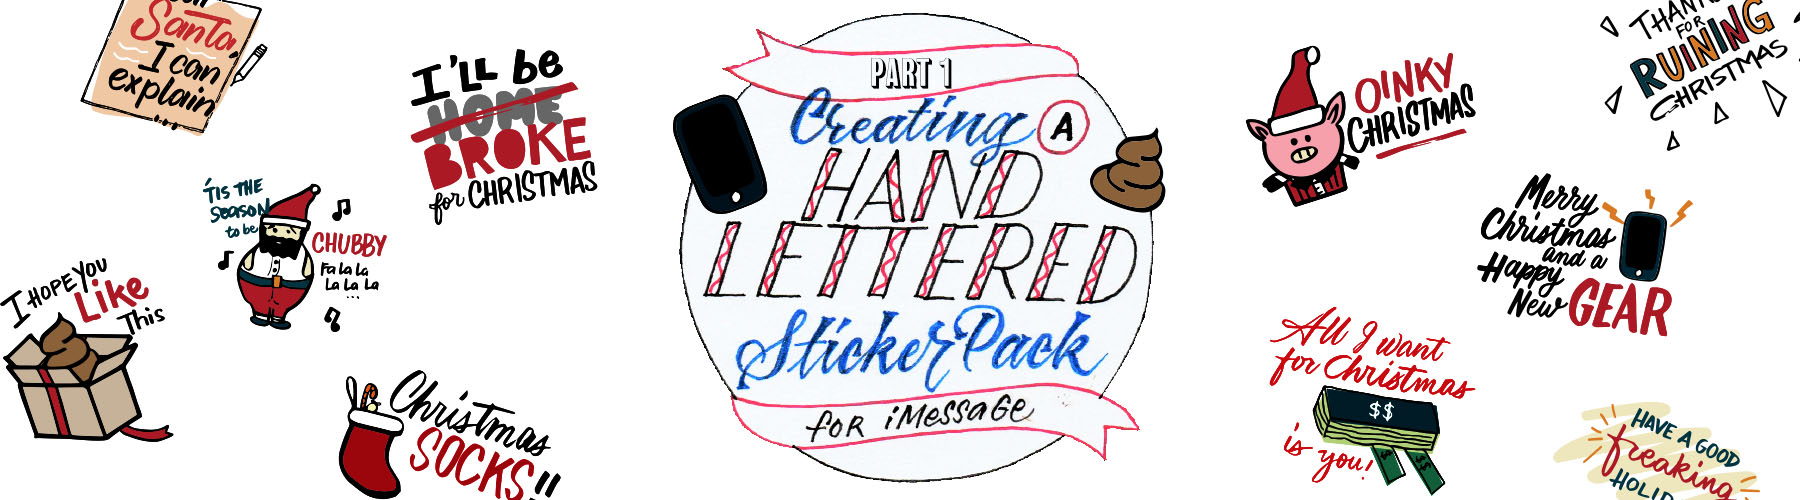 Creating-a-HandLettered-Sticker-Pack-for-iMessageArtboard-1.jpg